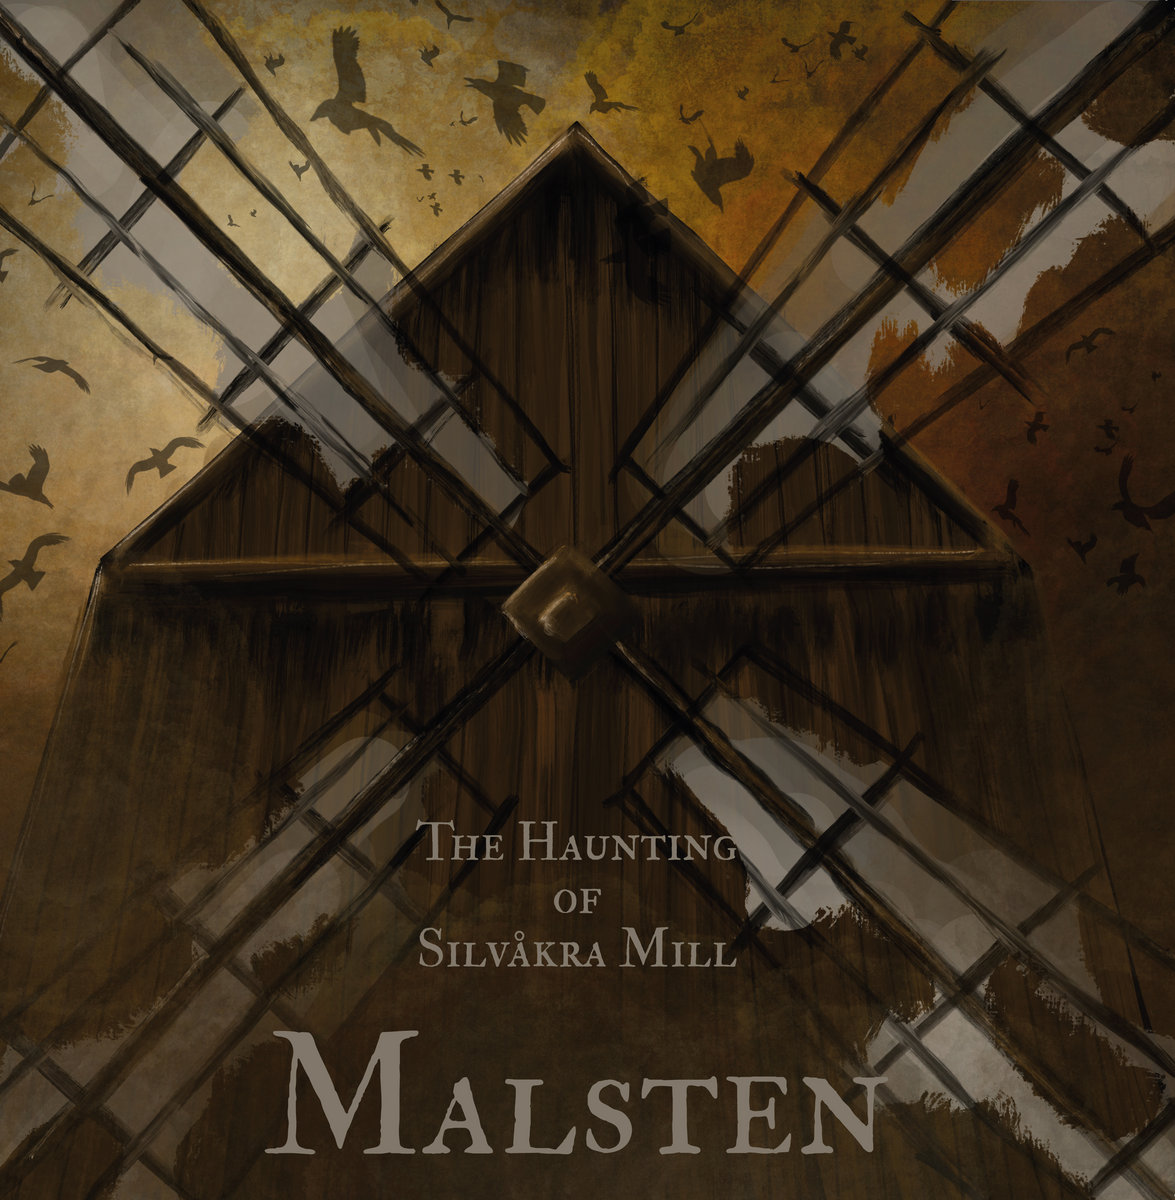 malsten The Haunting of Silvakra Mill